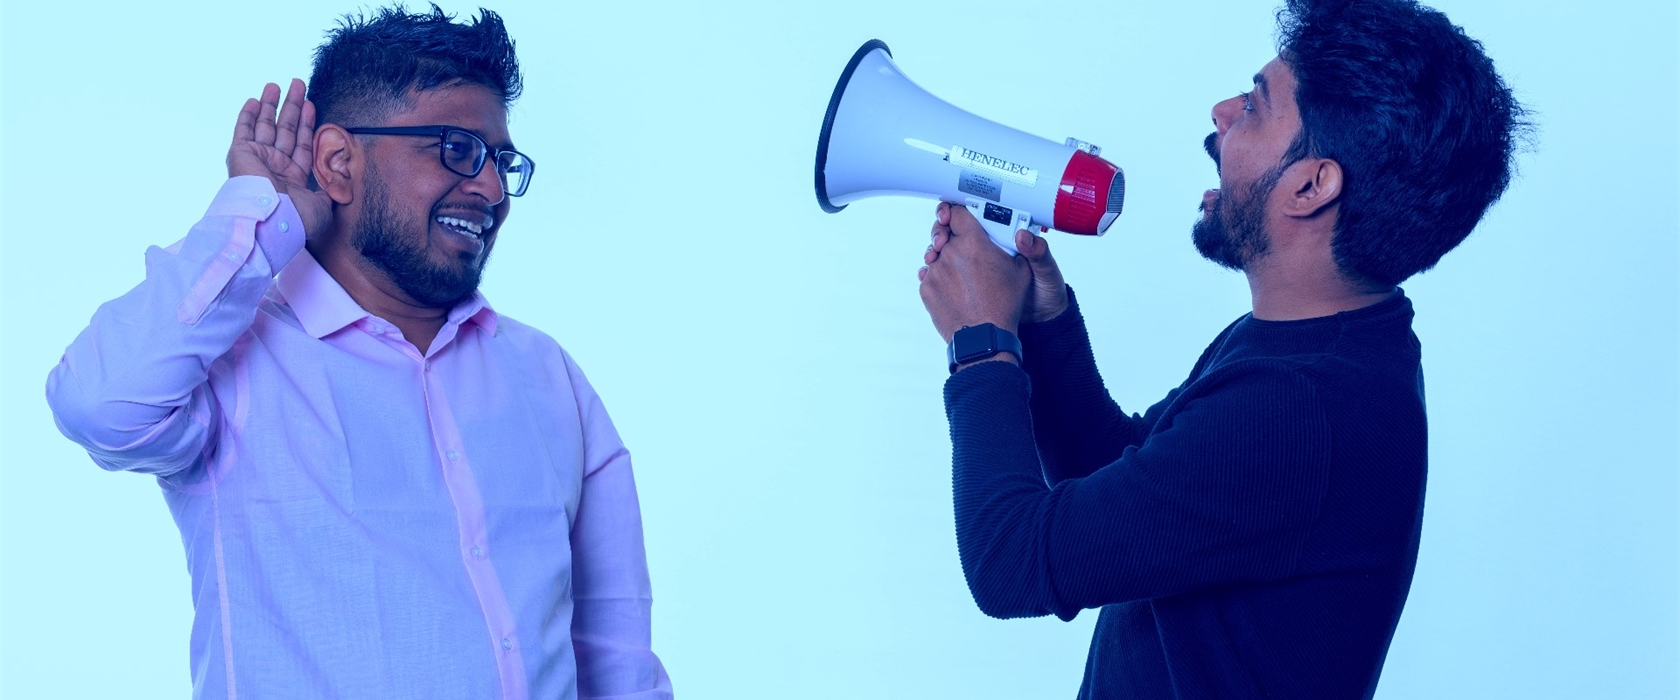 Avinash, Students' Union President and Omkar, Vice-President Business and Law, with a megaphone